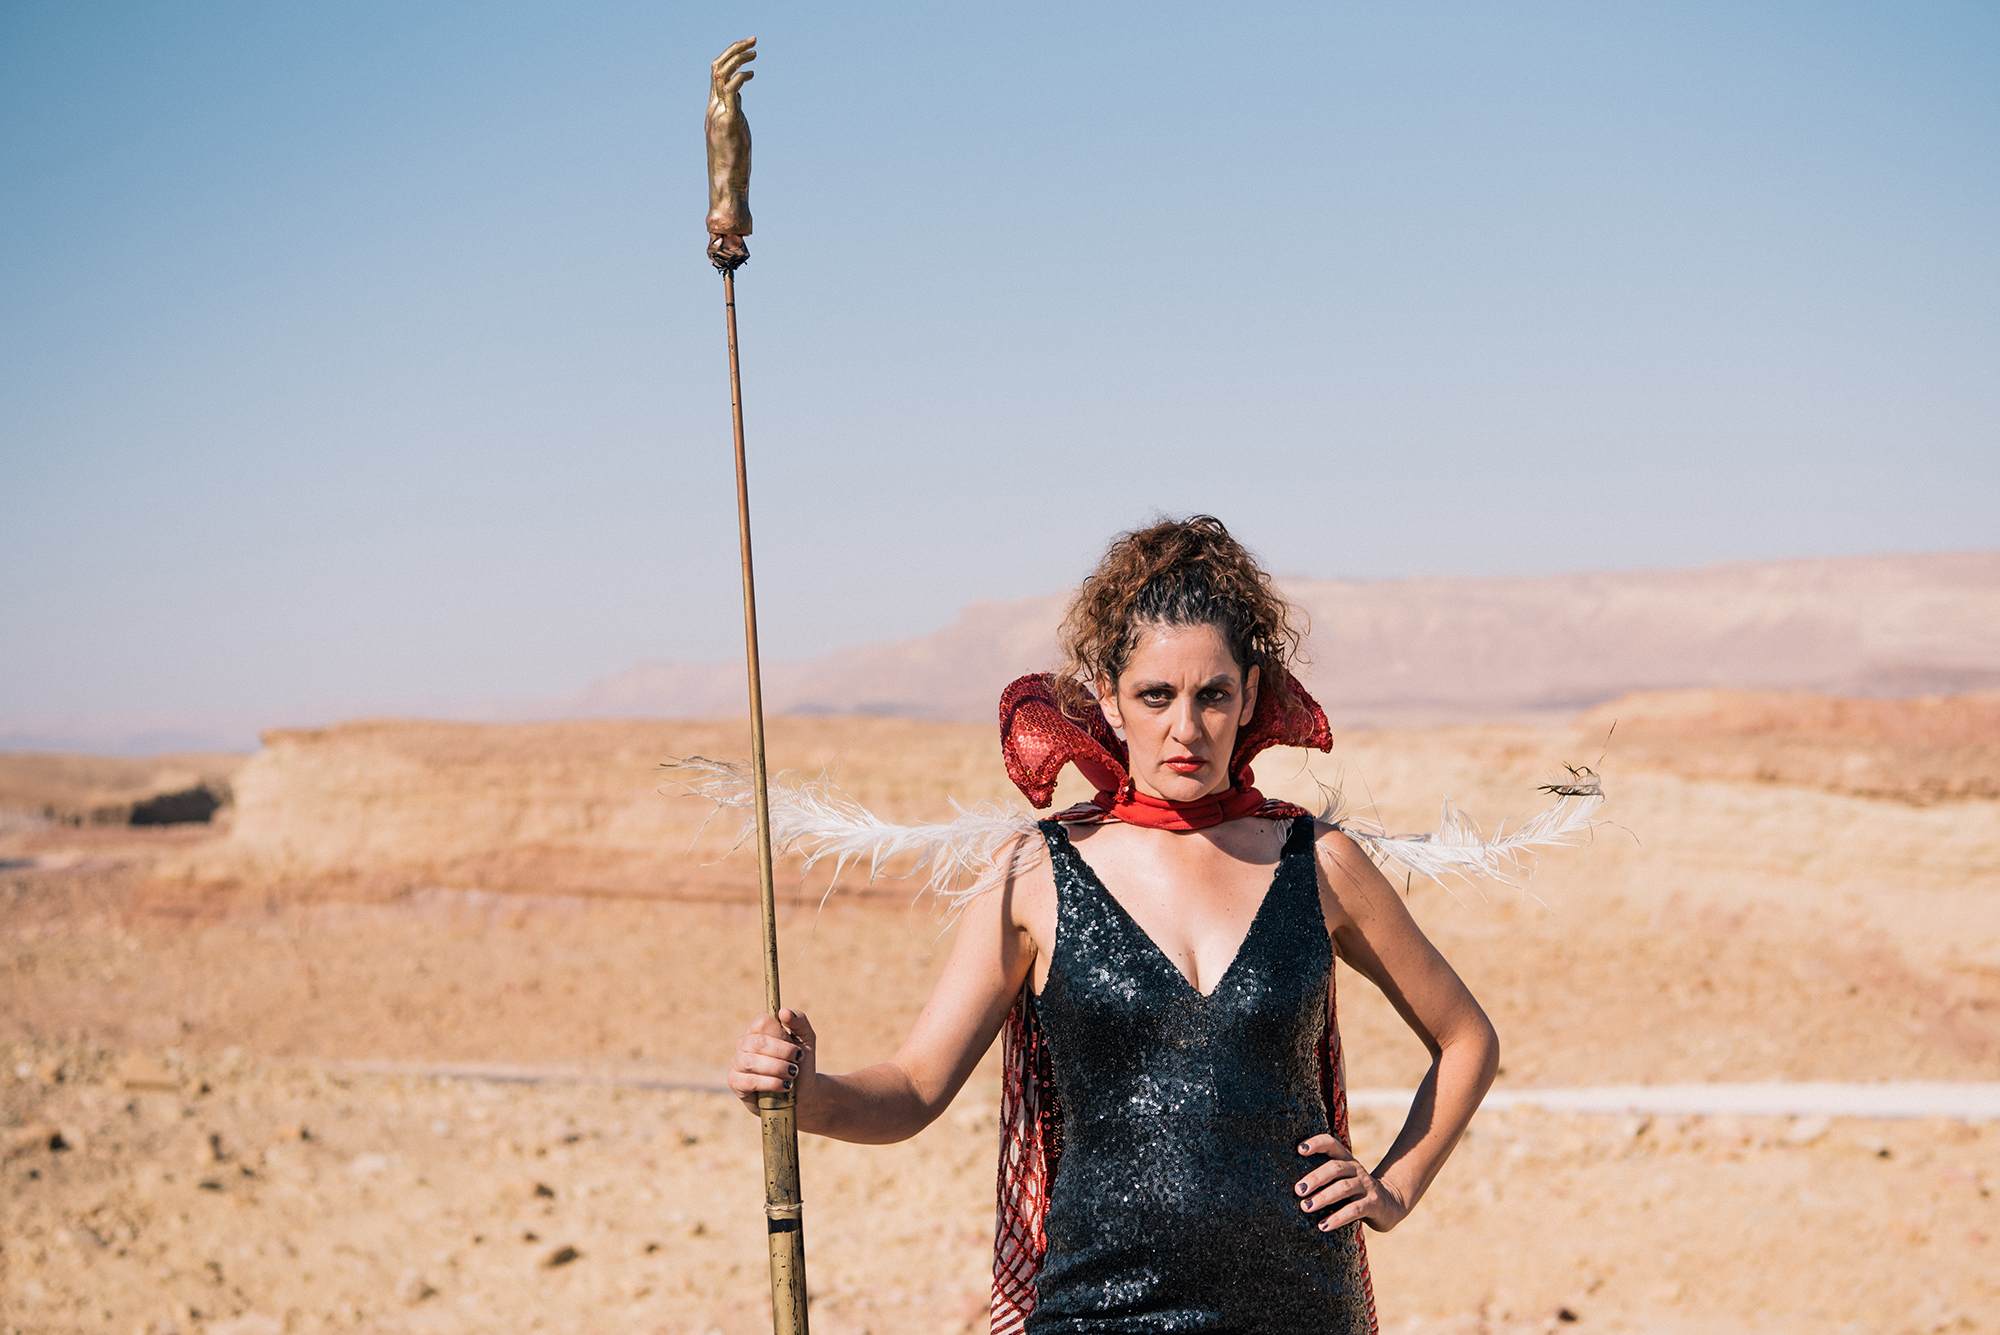 Arik Shraga photographs clown Michal Svironi looking furiously powerful in the desert with a long golden hand